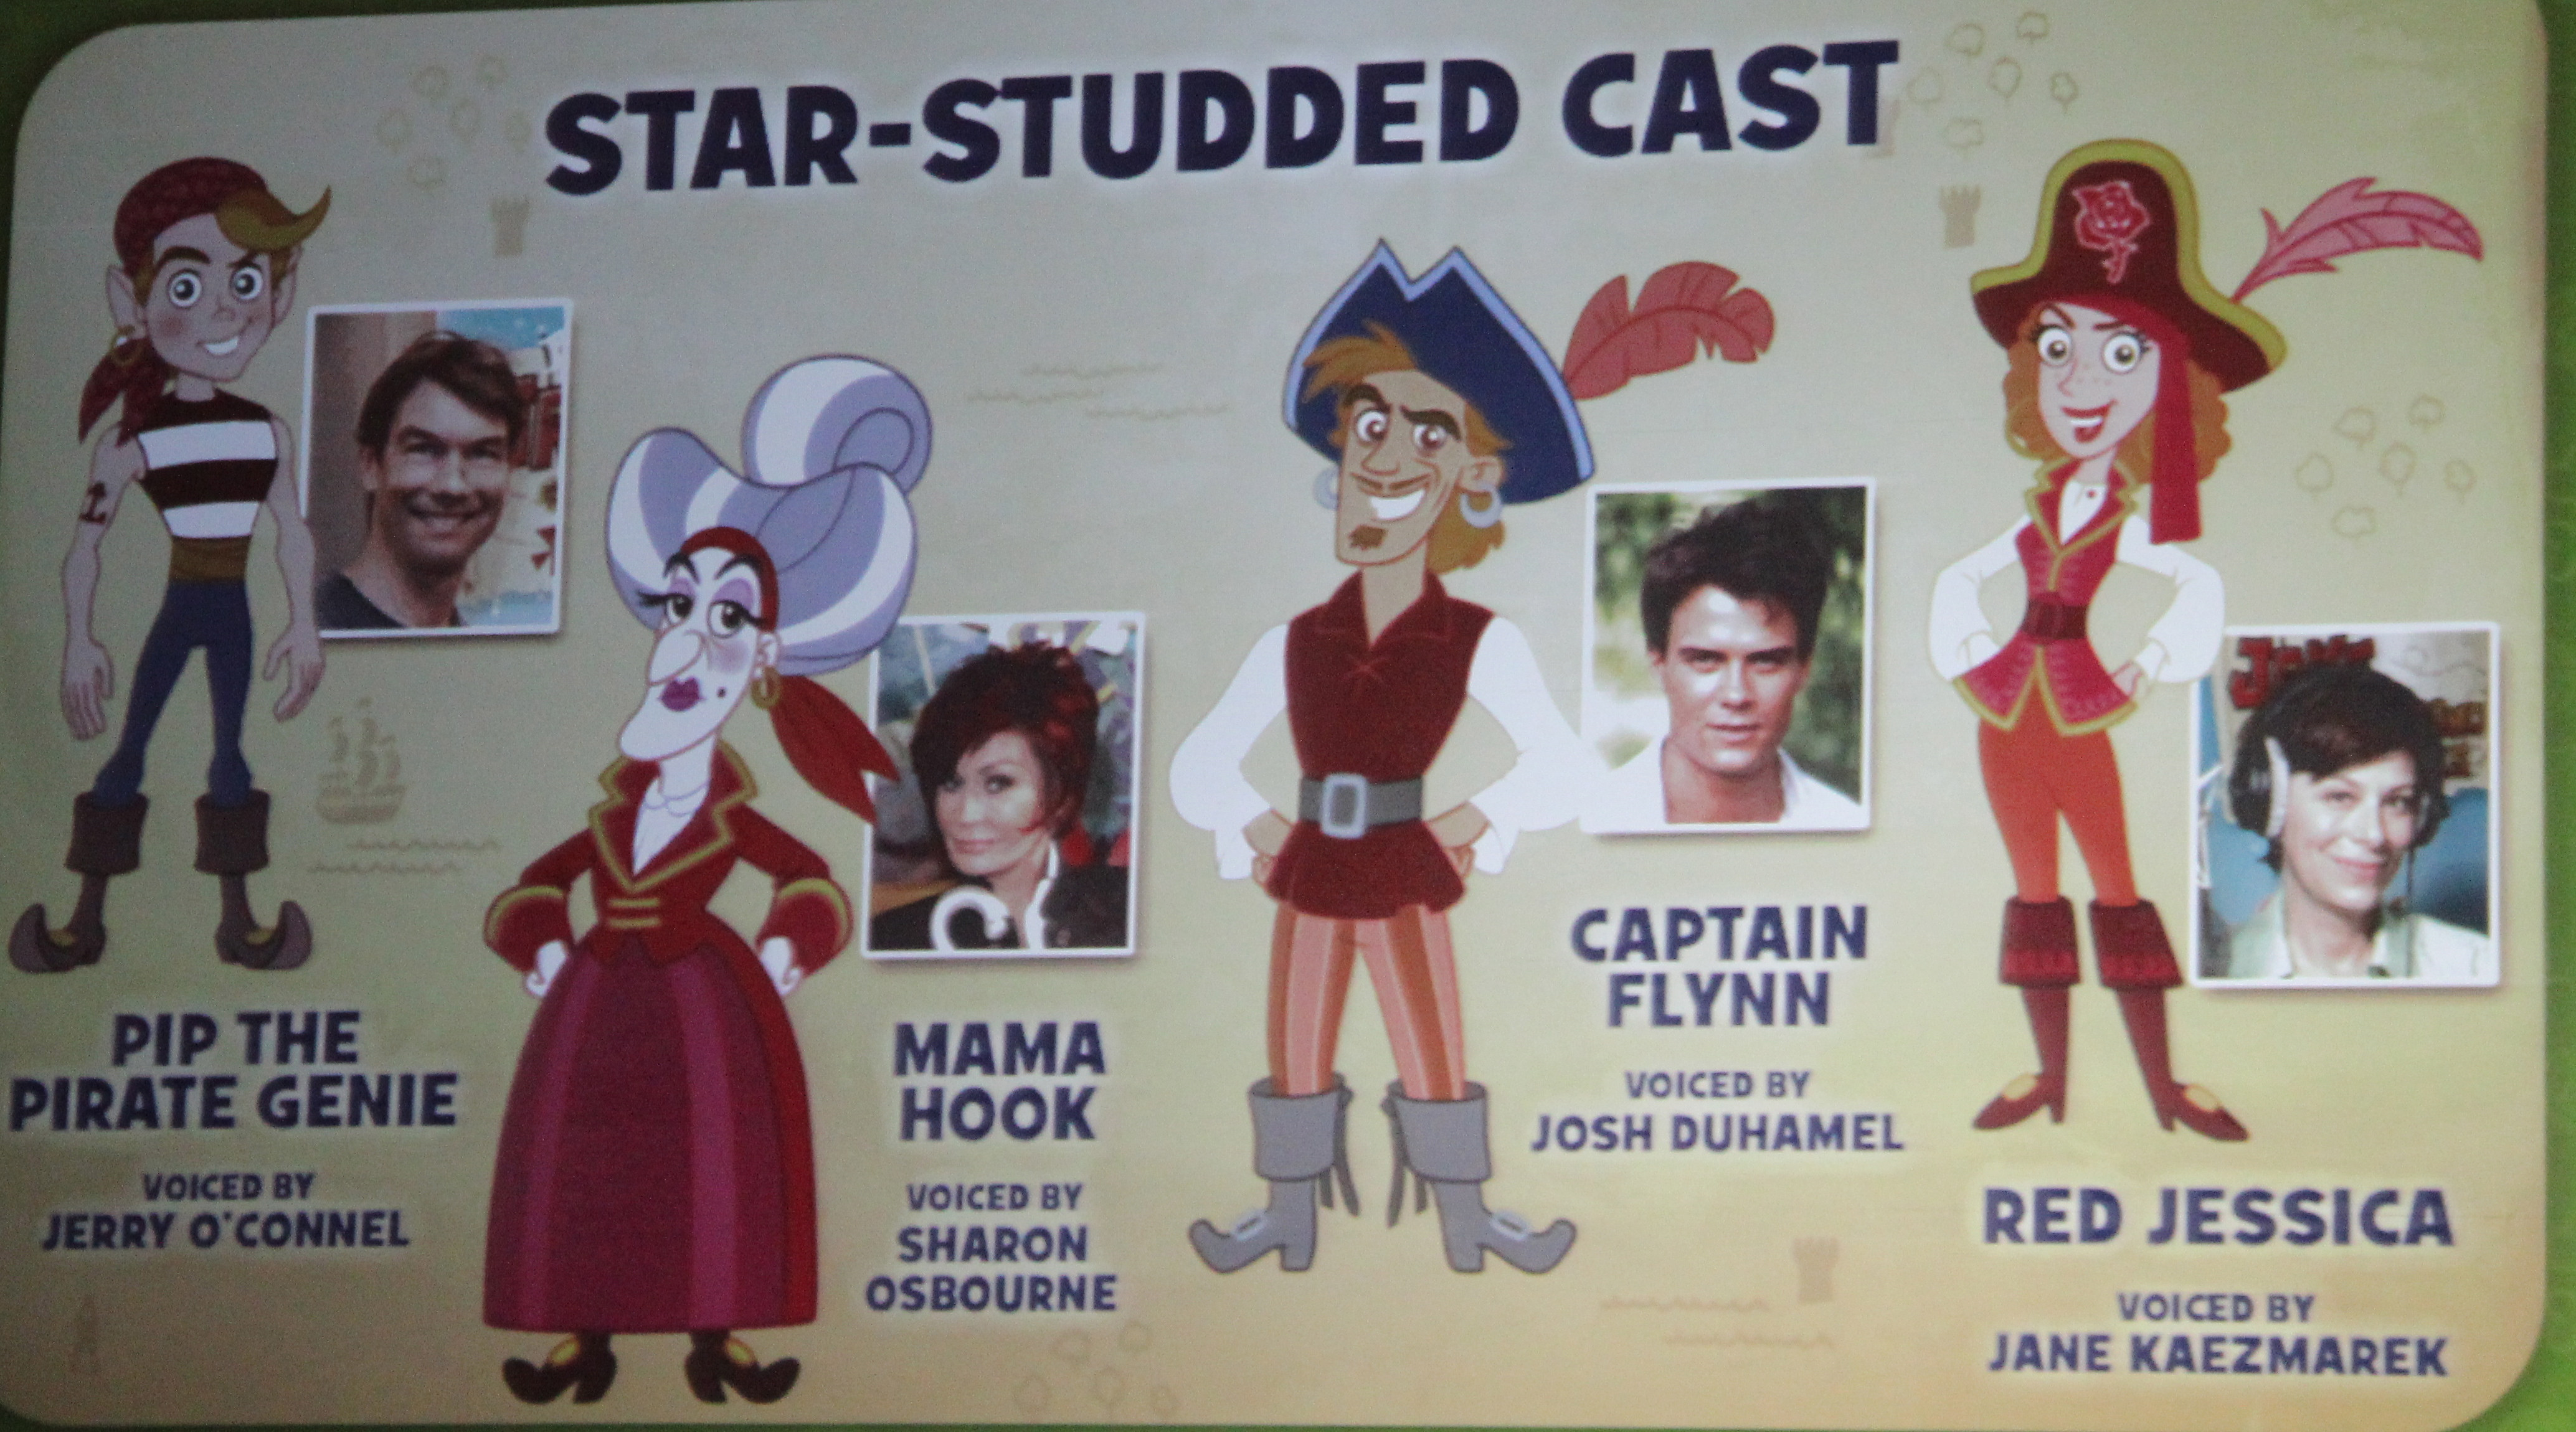 Jake and the neverland pirates cast - photo#2